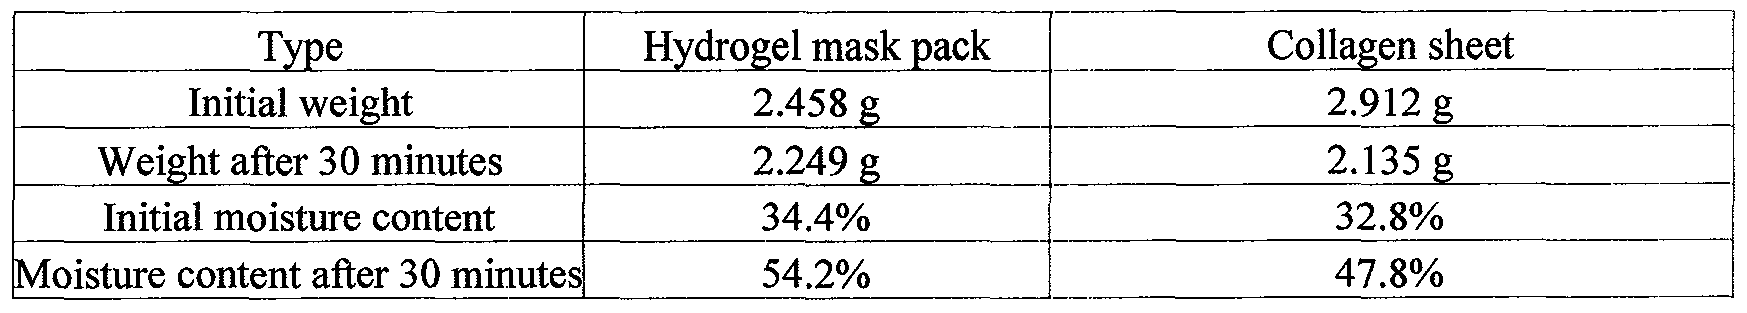 WO2008072817A1 - Hydrogel mask pack, method of preparing the